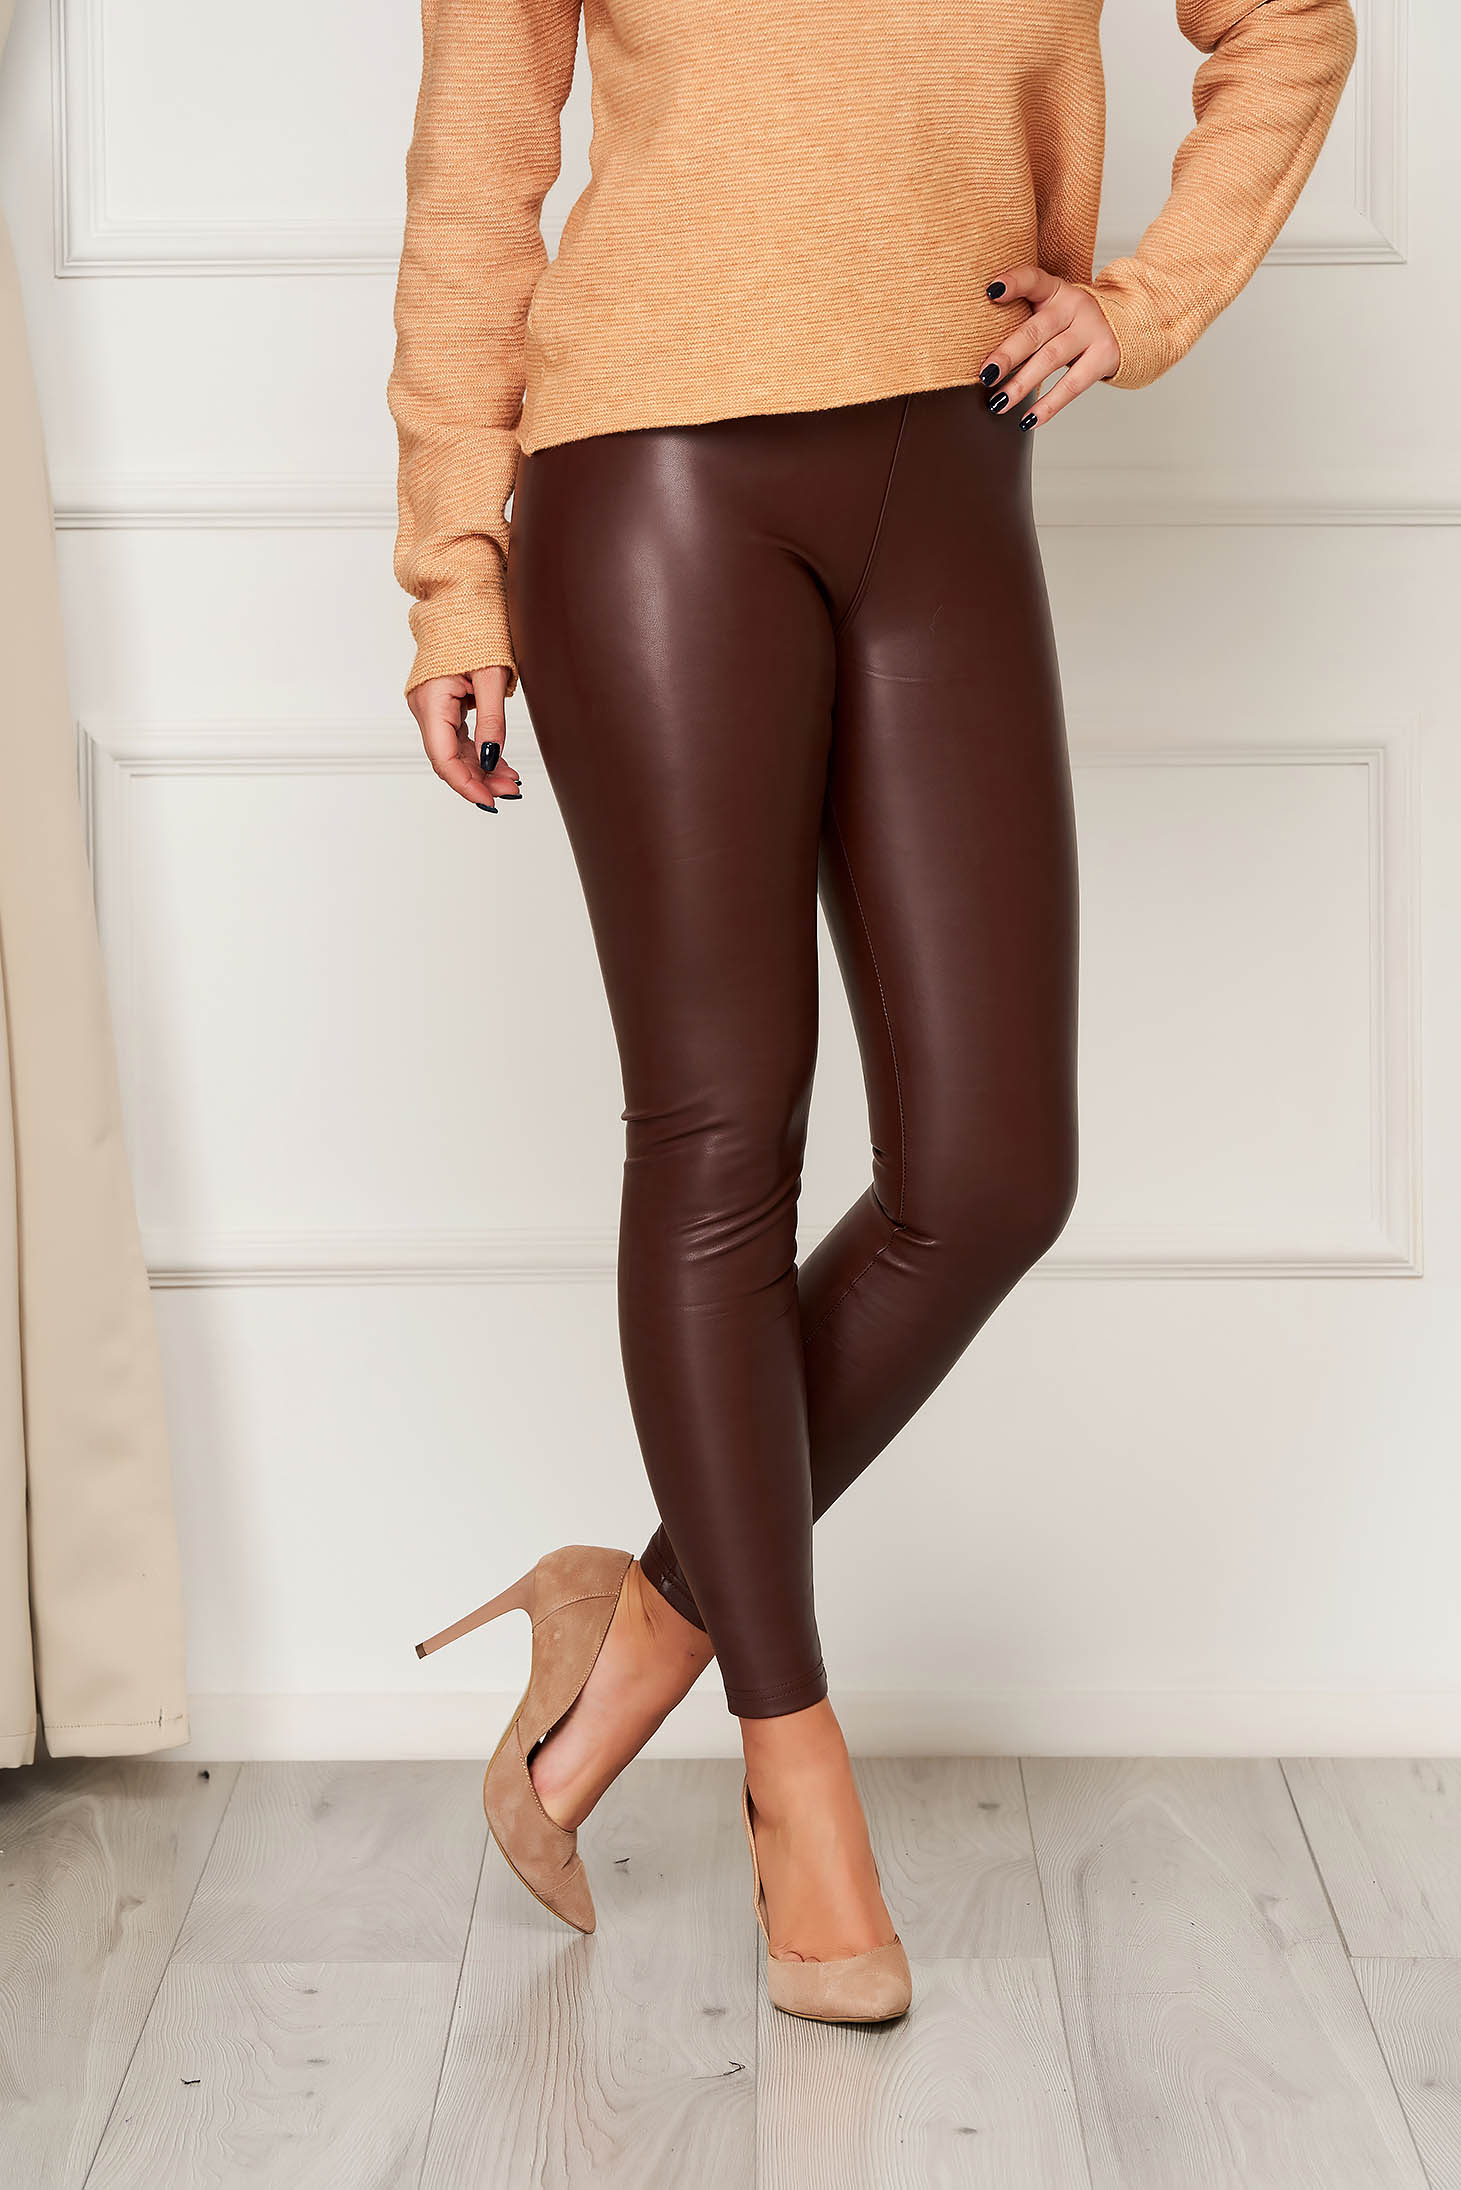 From ecological leather high waisted elastic waist burgundy tights long